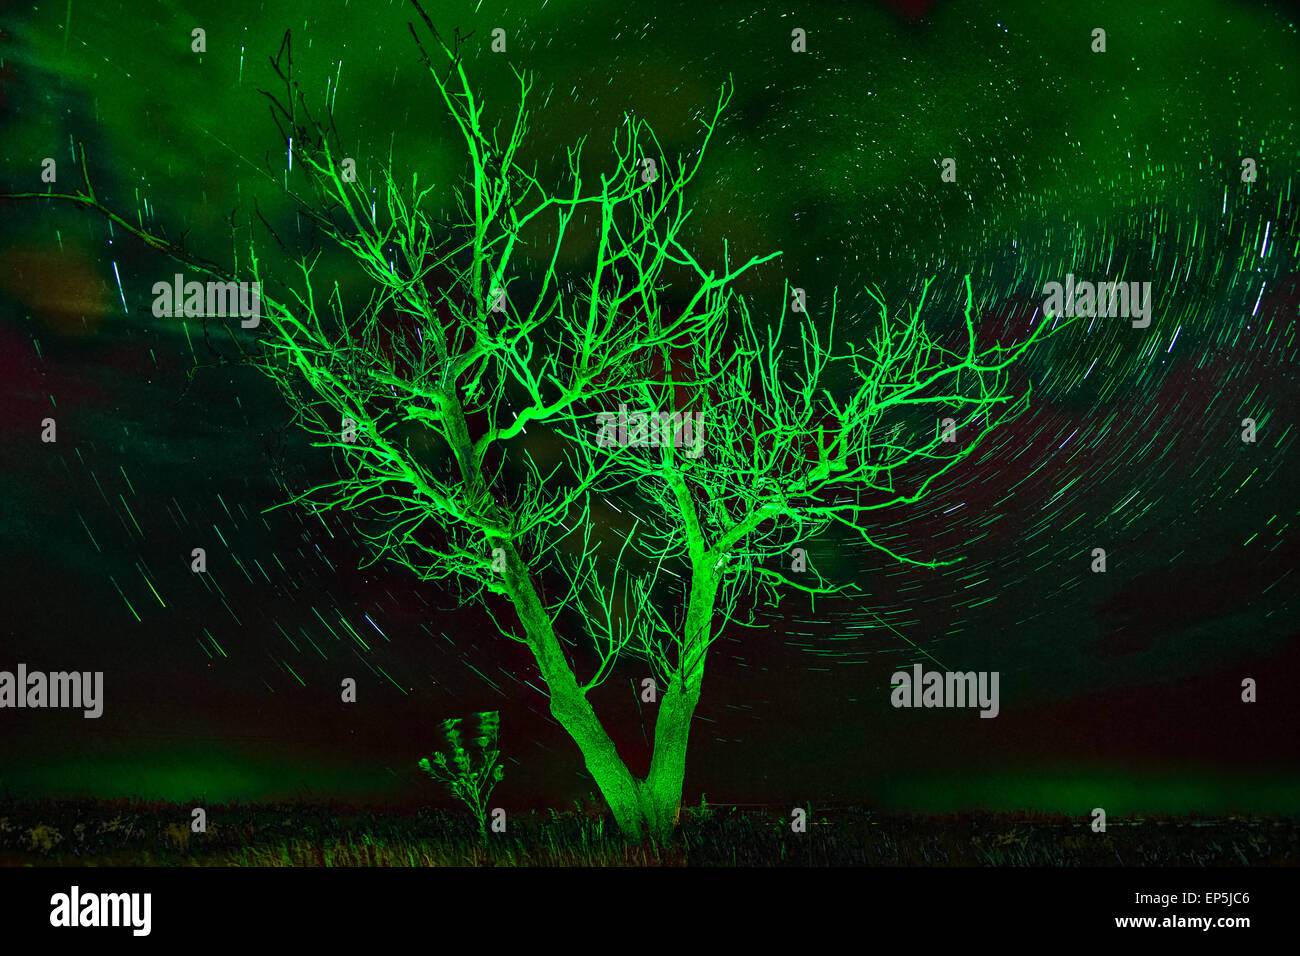 Alone tree on night sky with stars, startrails in unusual green light - Stock Image